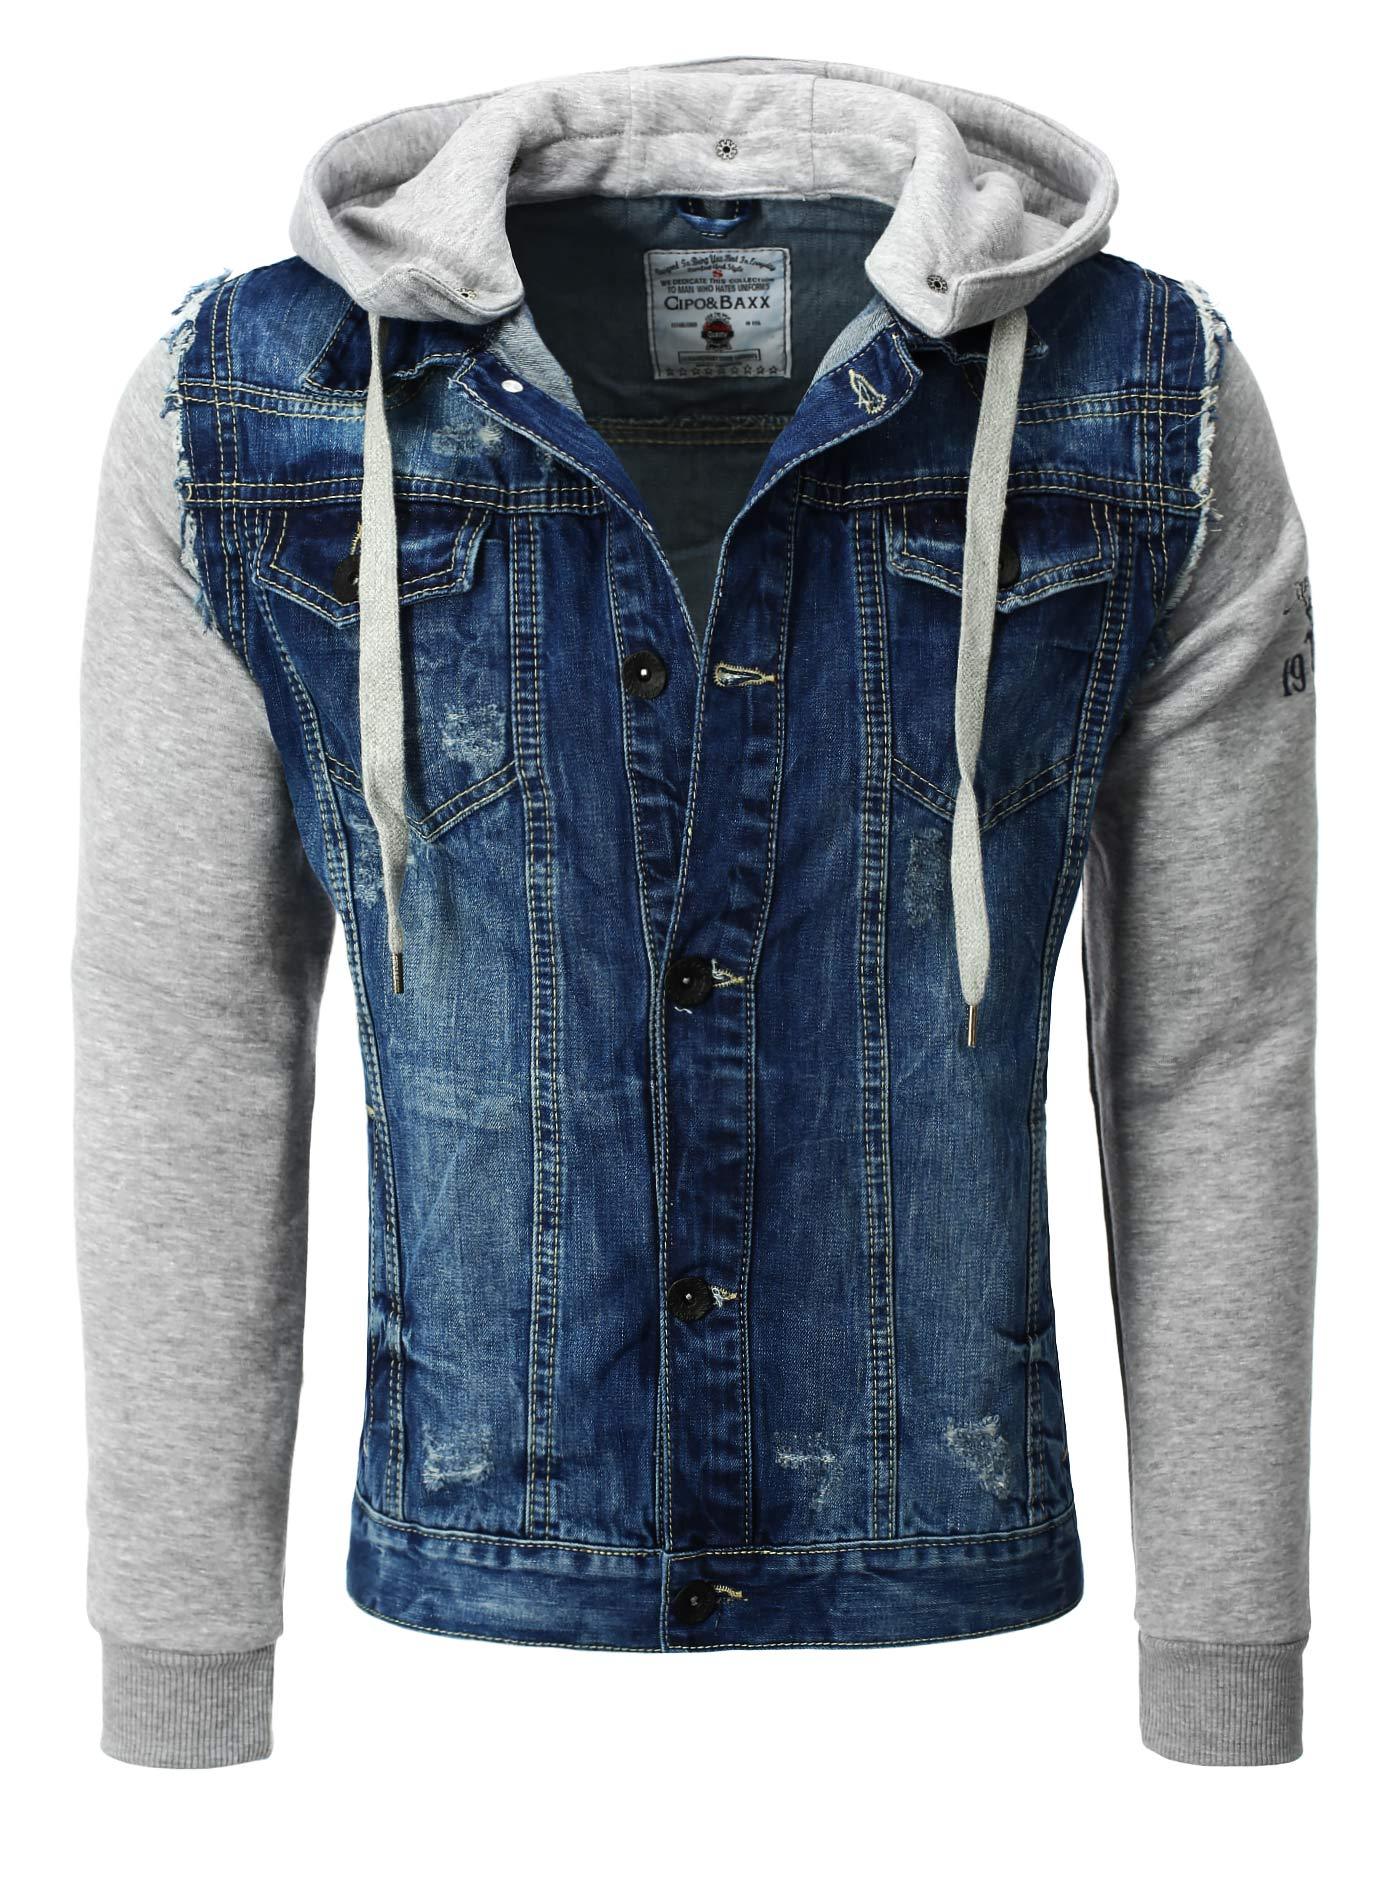 e9216dc35c Cipo & Baxx Jean Jacket with Fabric sleeves and Front Pocket, blue -  Férfidivat